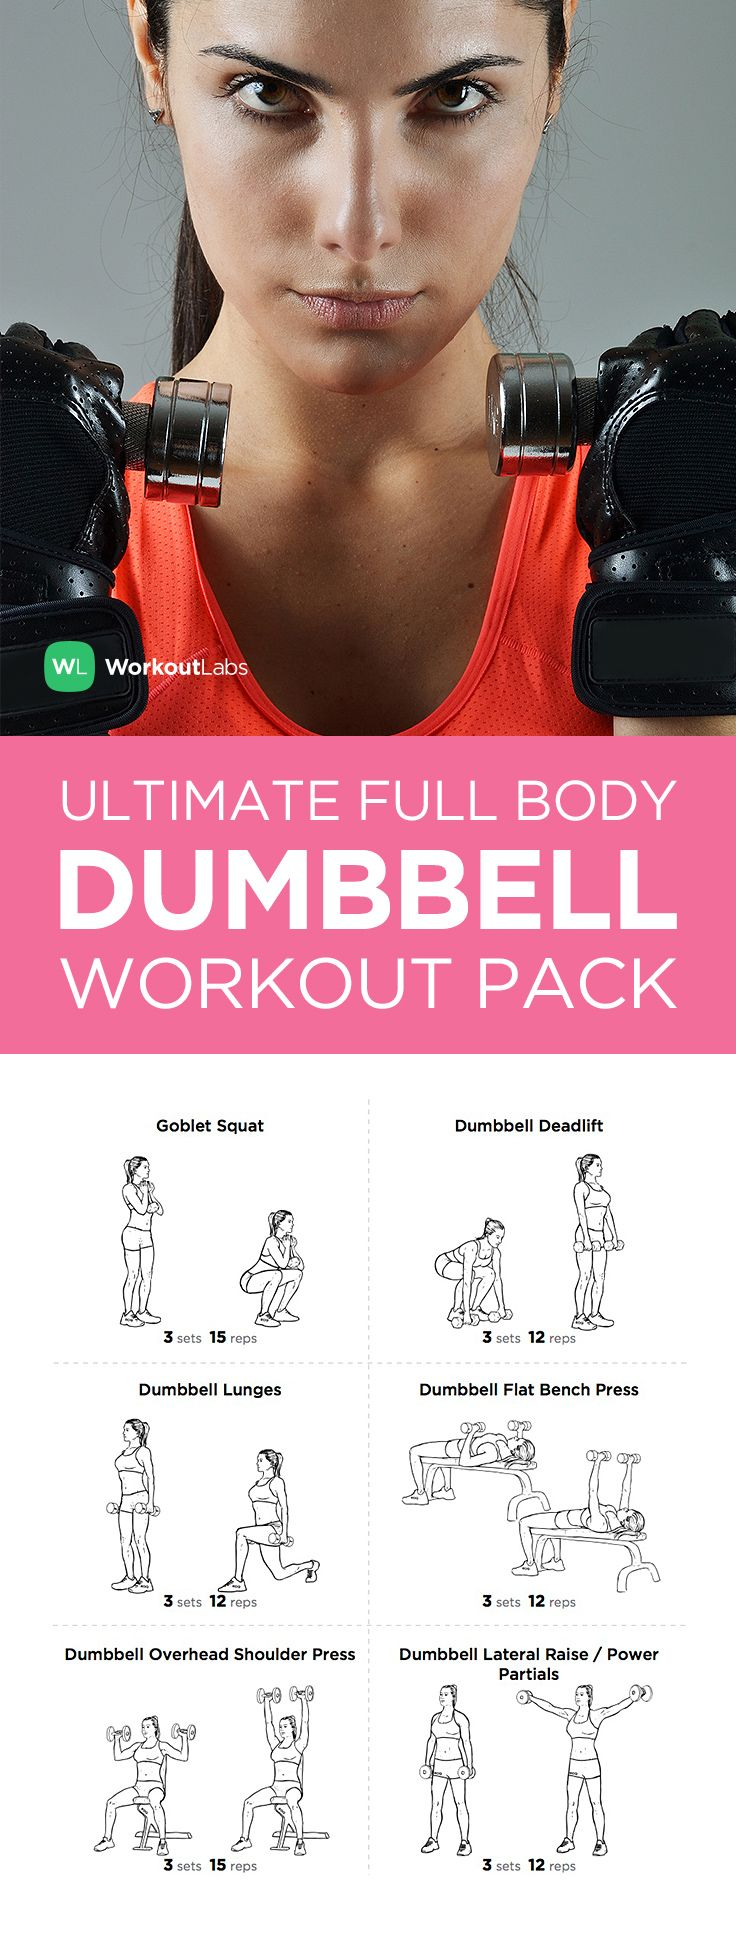 Ultimate Full Body Dumbbell Workout Pack for Men & Women - everything you need to know to get a full body workout in this downloadable PDF!